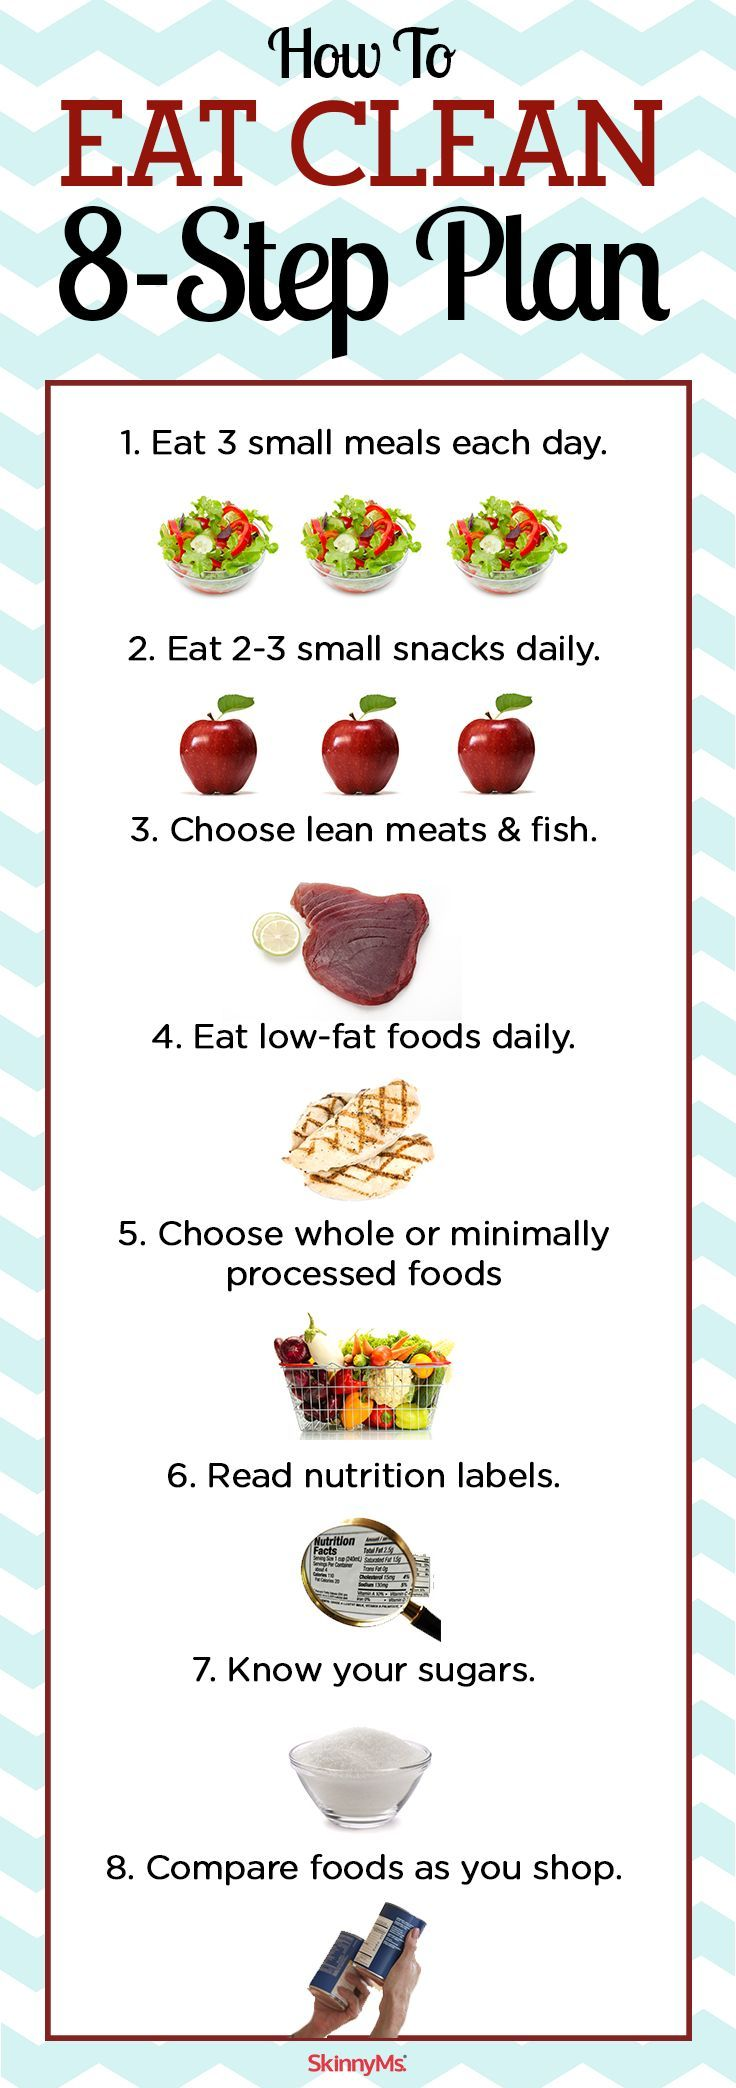 Simple How to Eat Clean 8-Step Plan